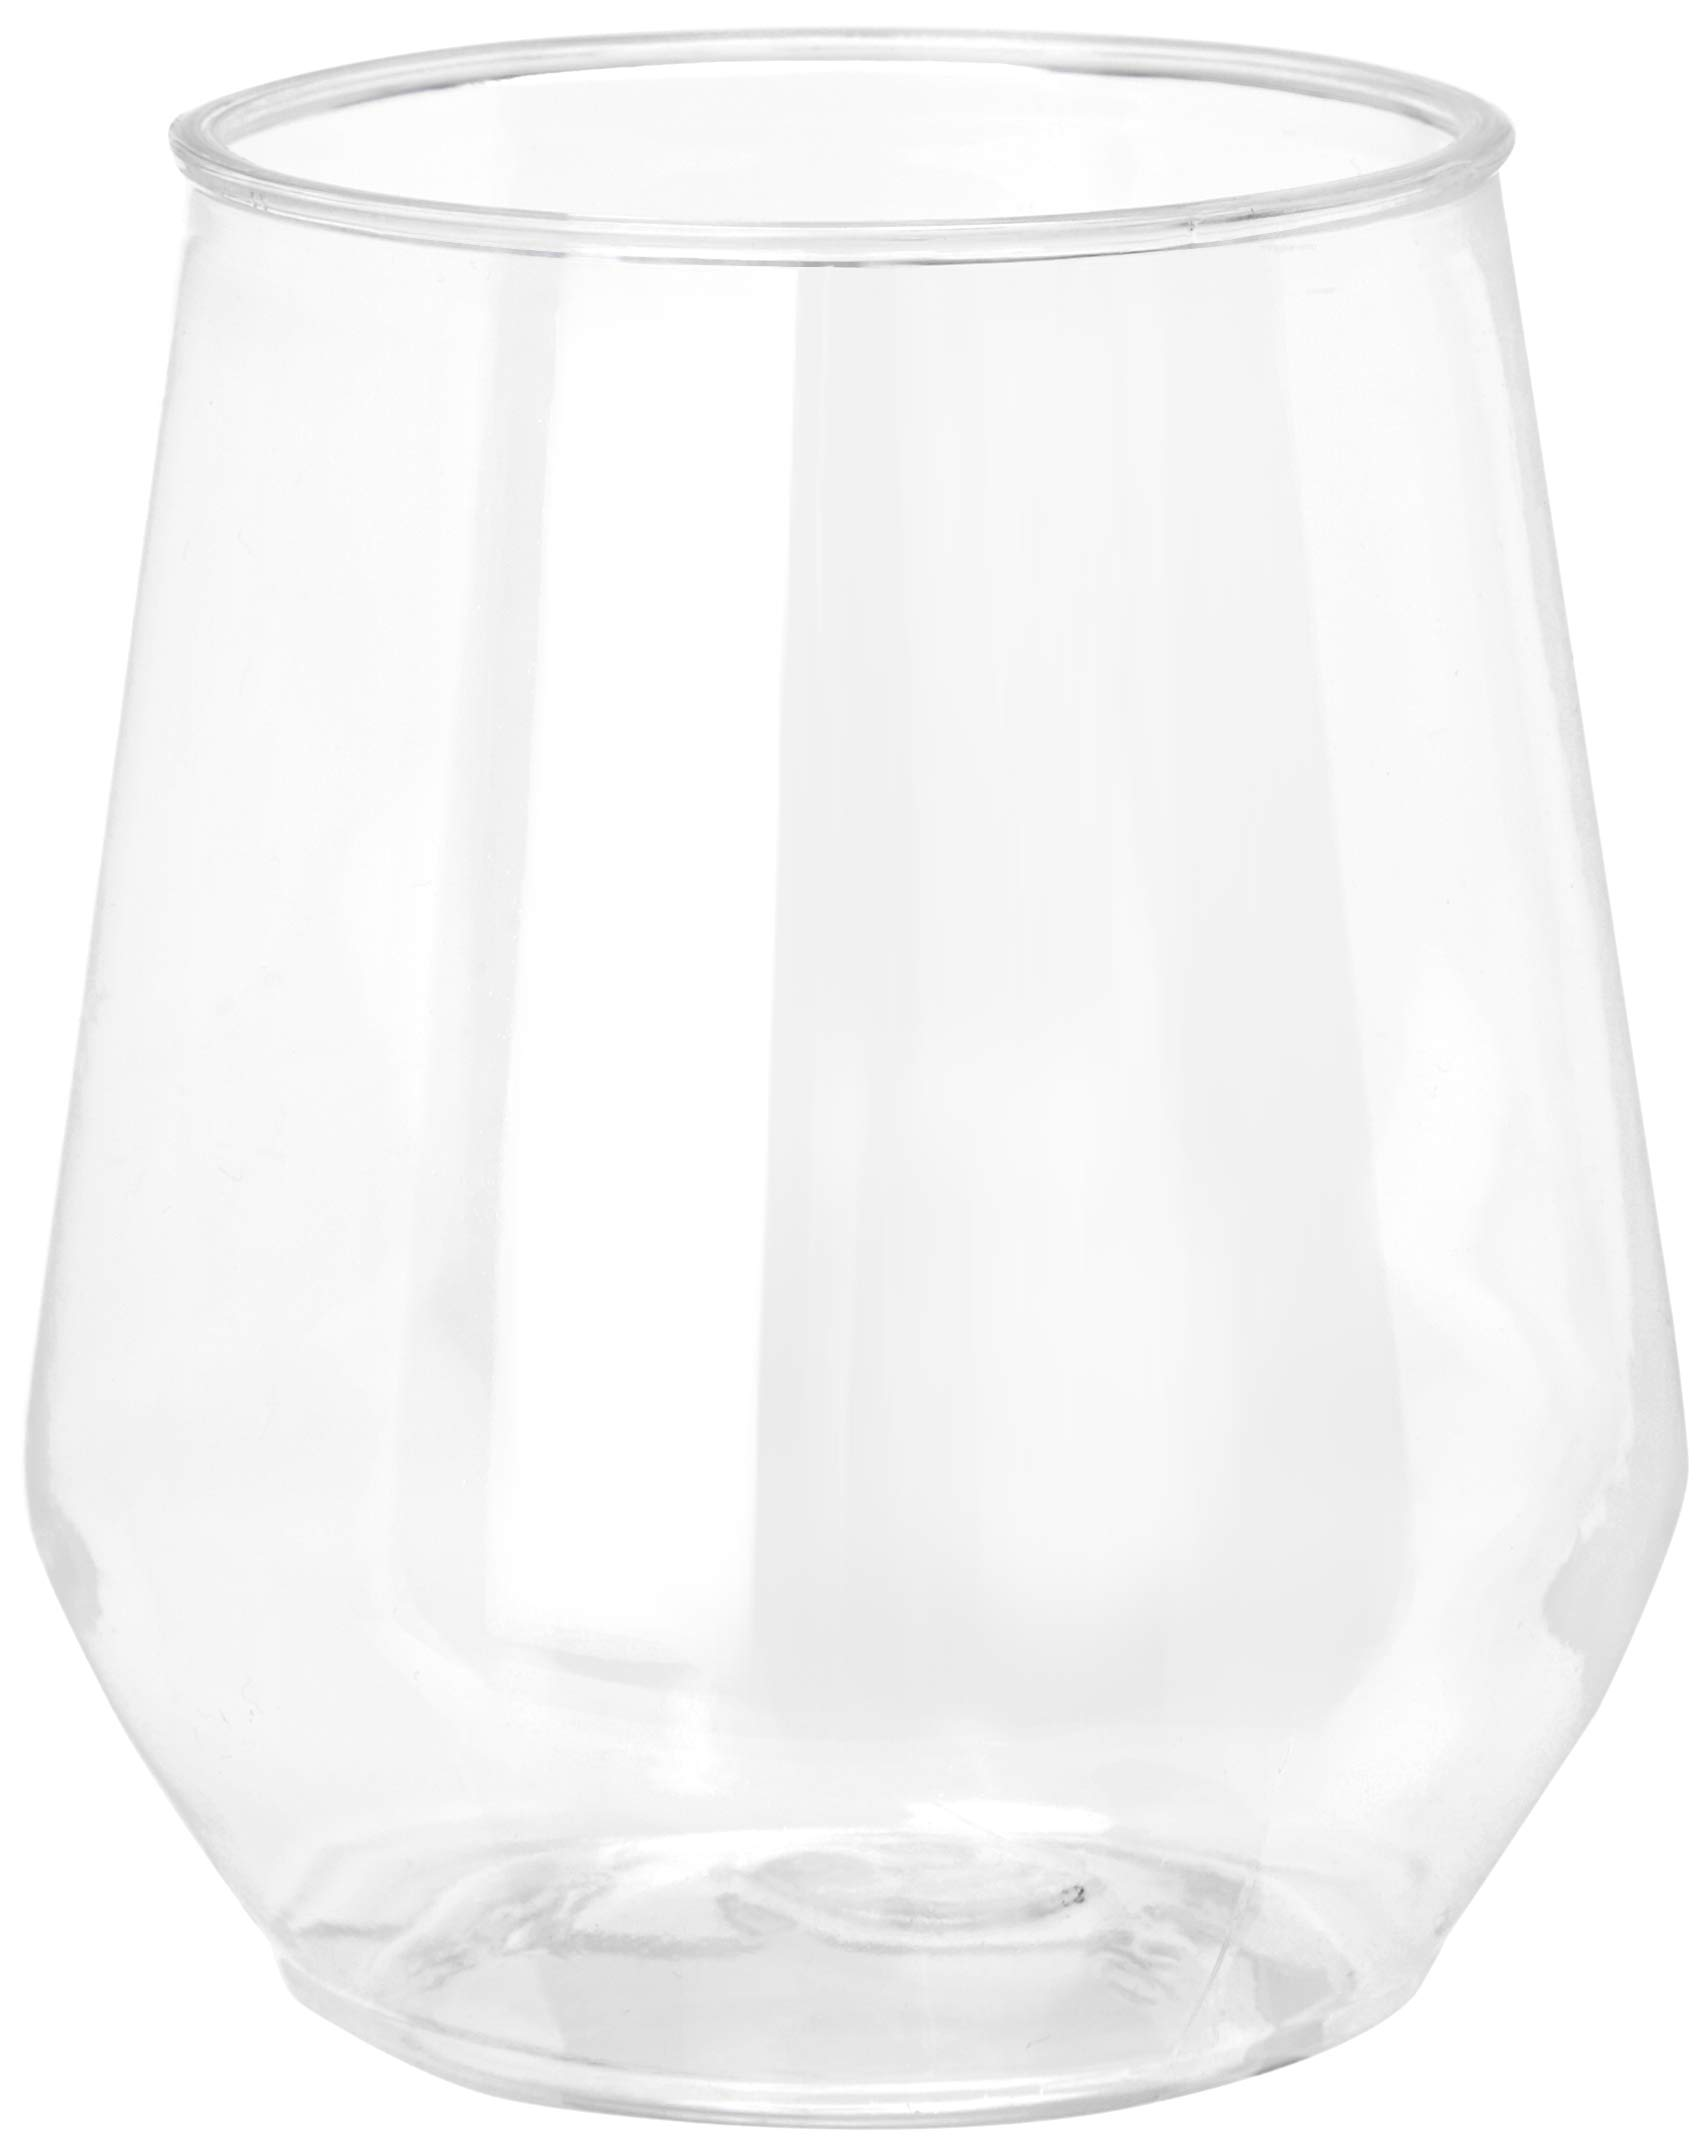 32 count 12 oz Unbreakable Stemless Plastic Wine Champagne Glasses Elegant Durable Reusable Shatterproof Indoor Outdoor Ideal for Home, Office, Bars, Wedding, Bridal Baby Shower by Oojami